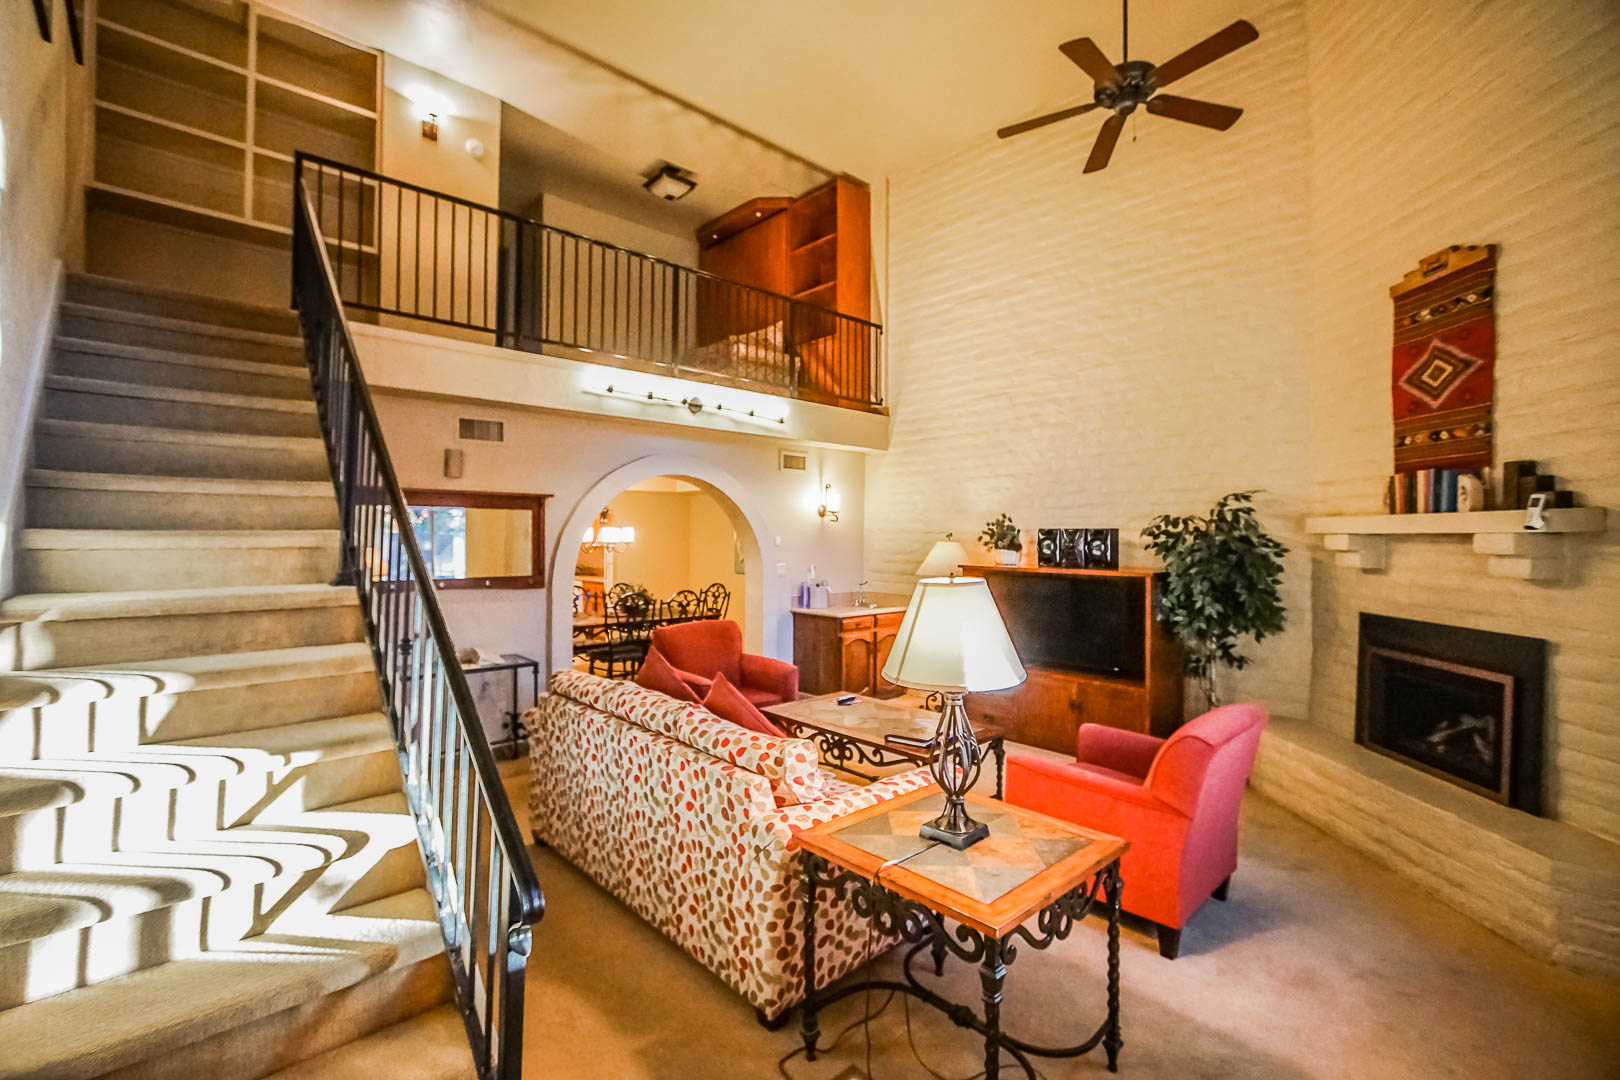 A vibrant living room, and a view of the upstairs bedroom at VRI's Villas of Sedona in Arizona.